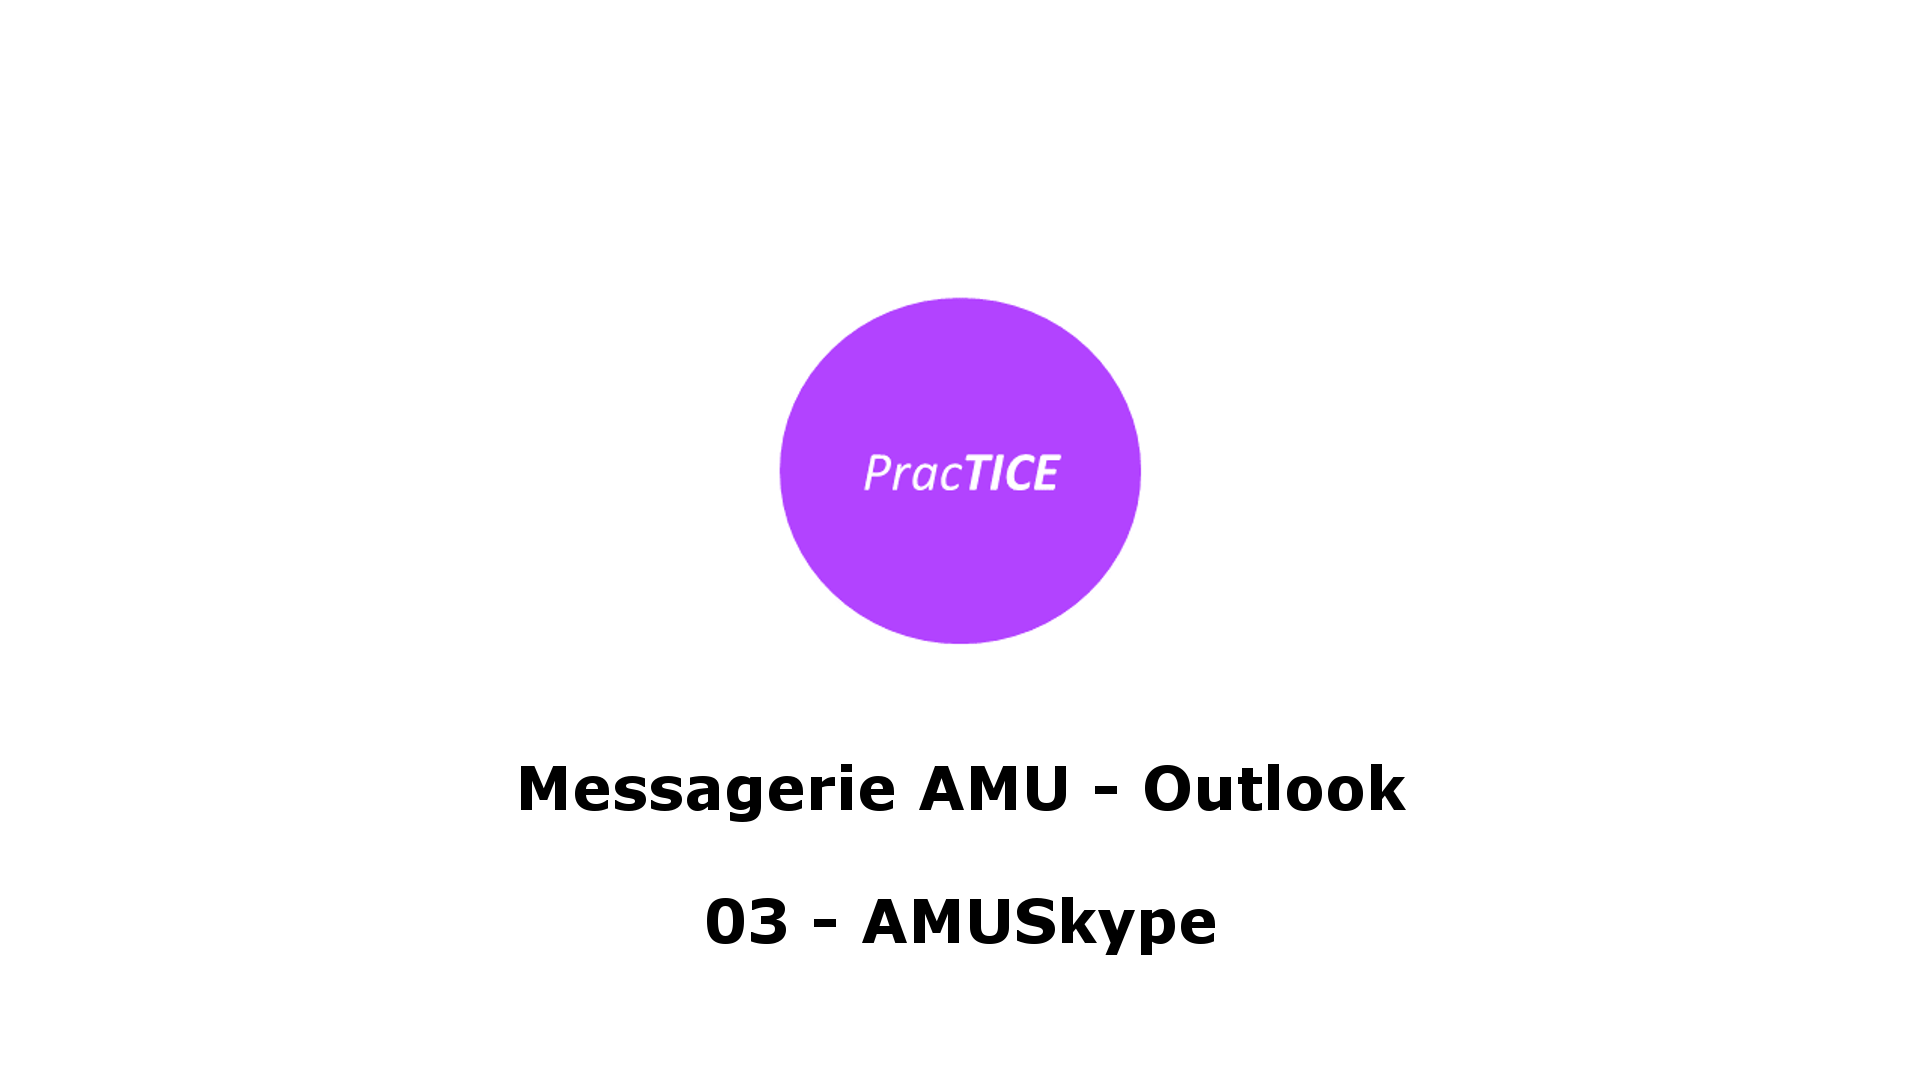 Messagerie AMU - Outlook - 03 - AMUSkype